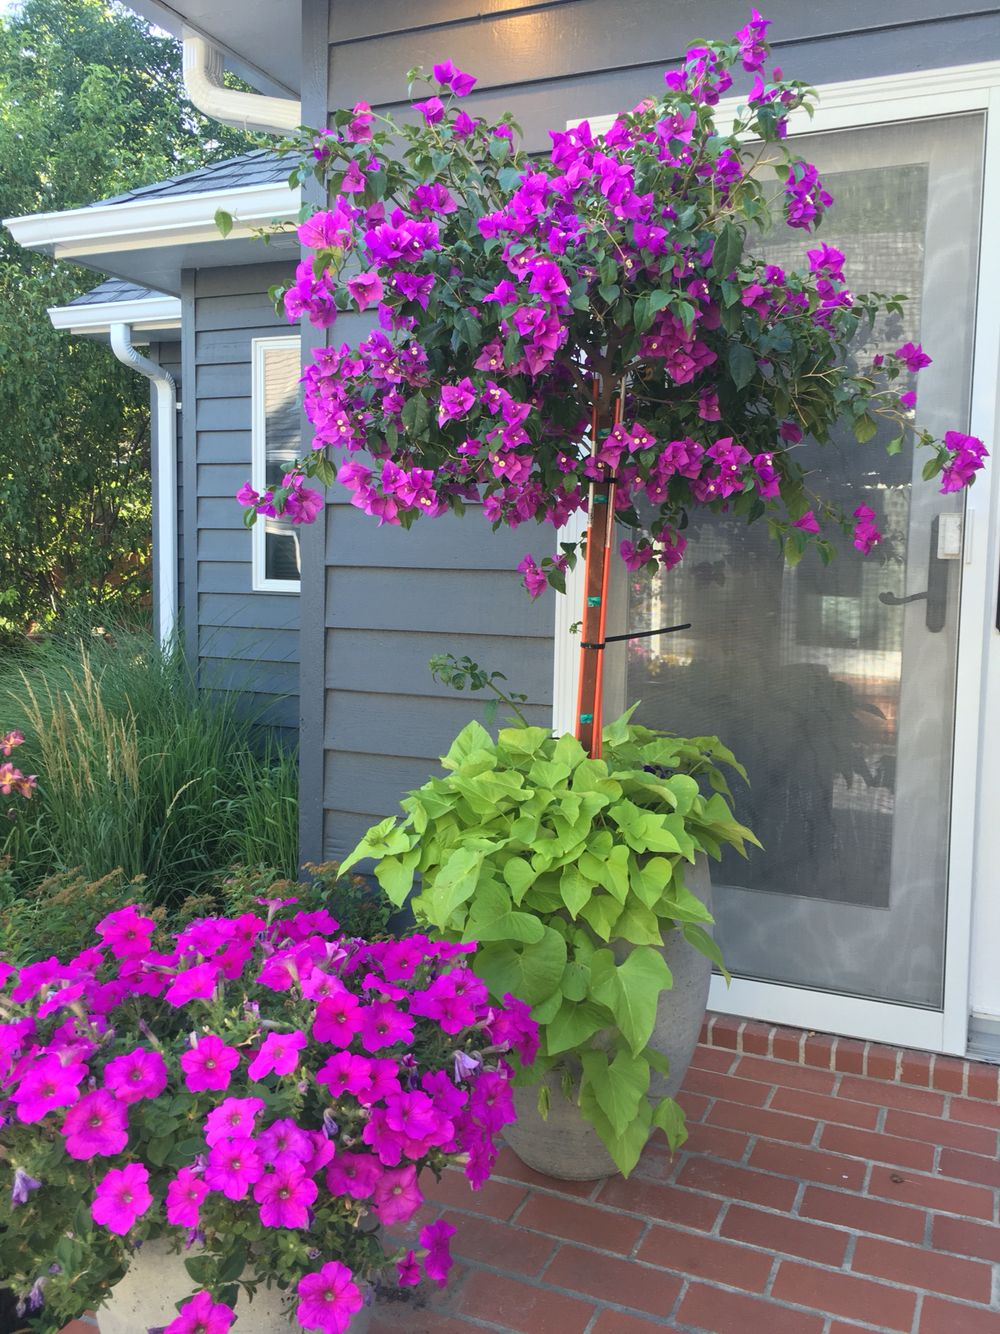 Bougainvillea Tree Patio Flowers Potted Plants Full Sun More